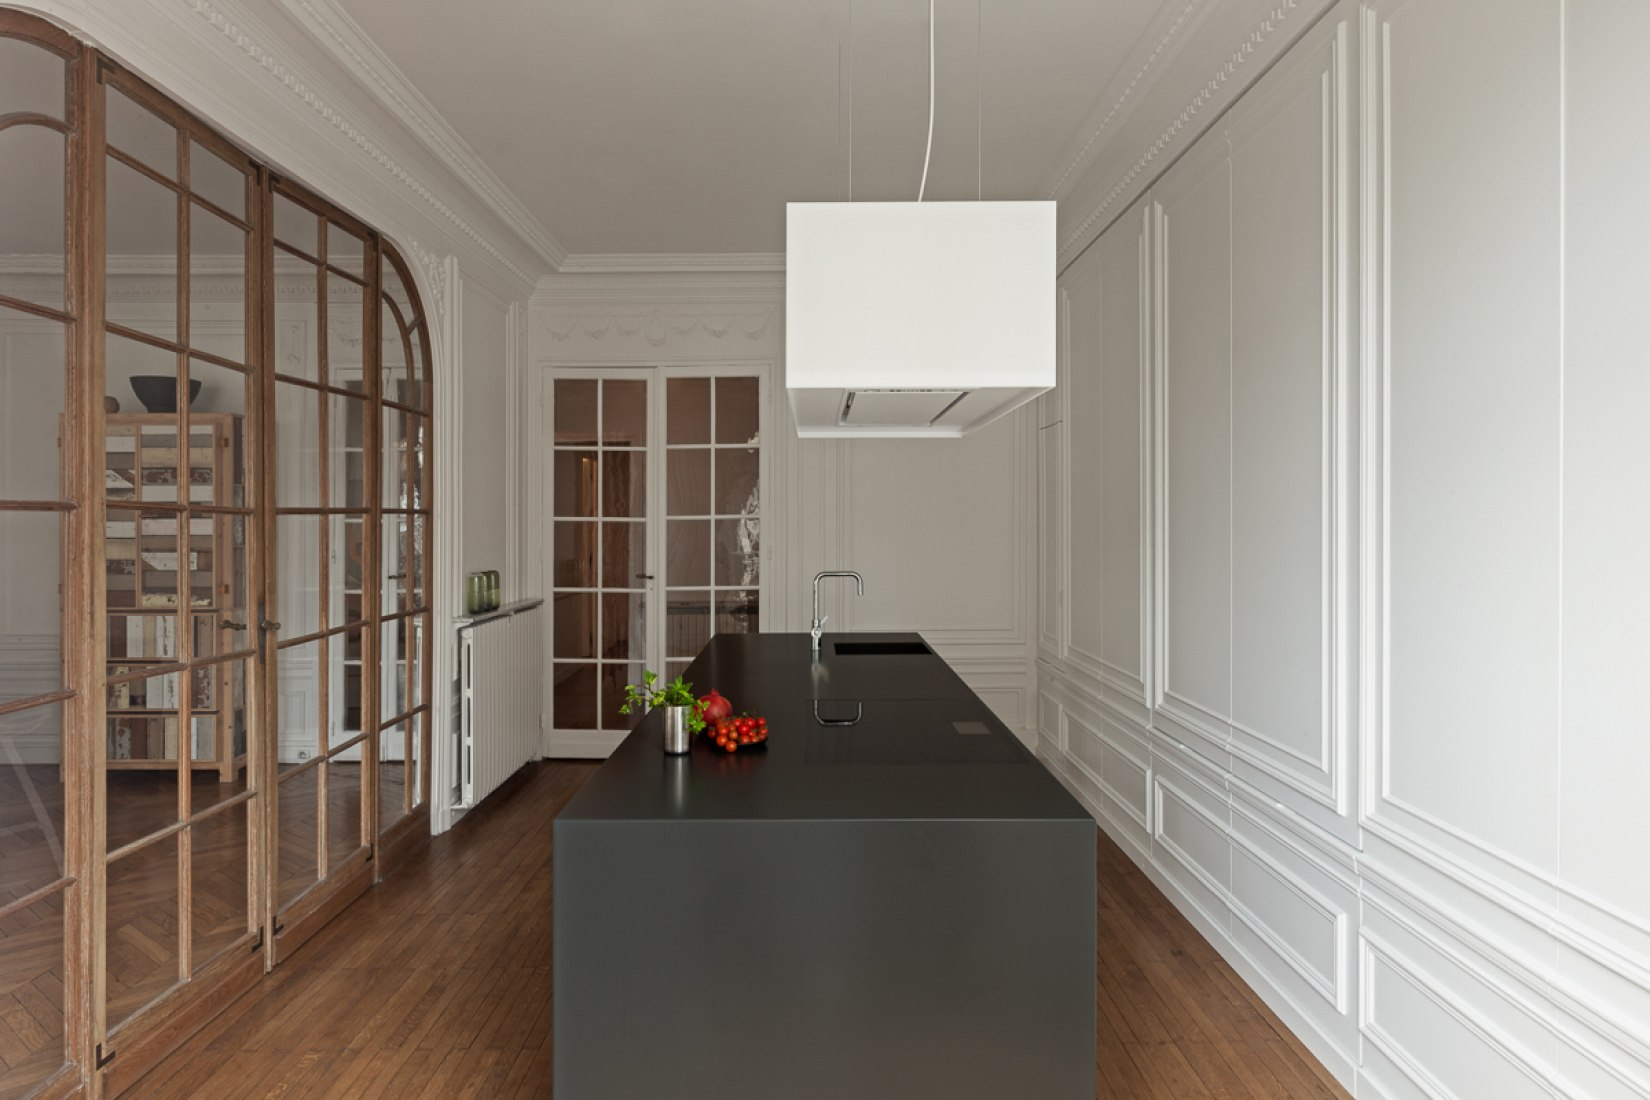 Invisible kitchen by i29 interior architects the strength of